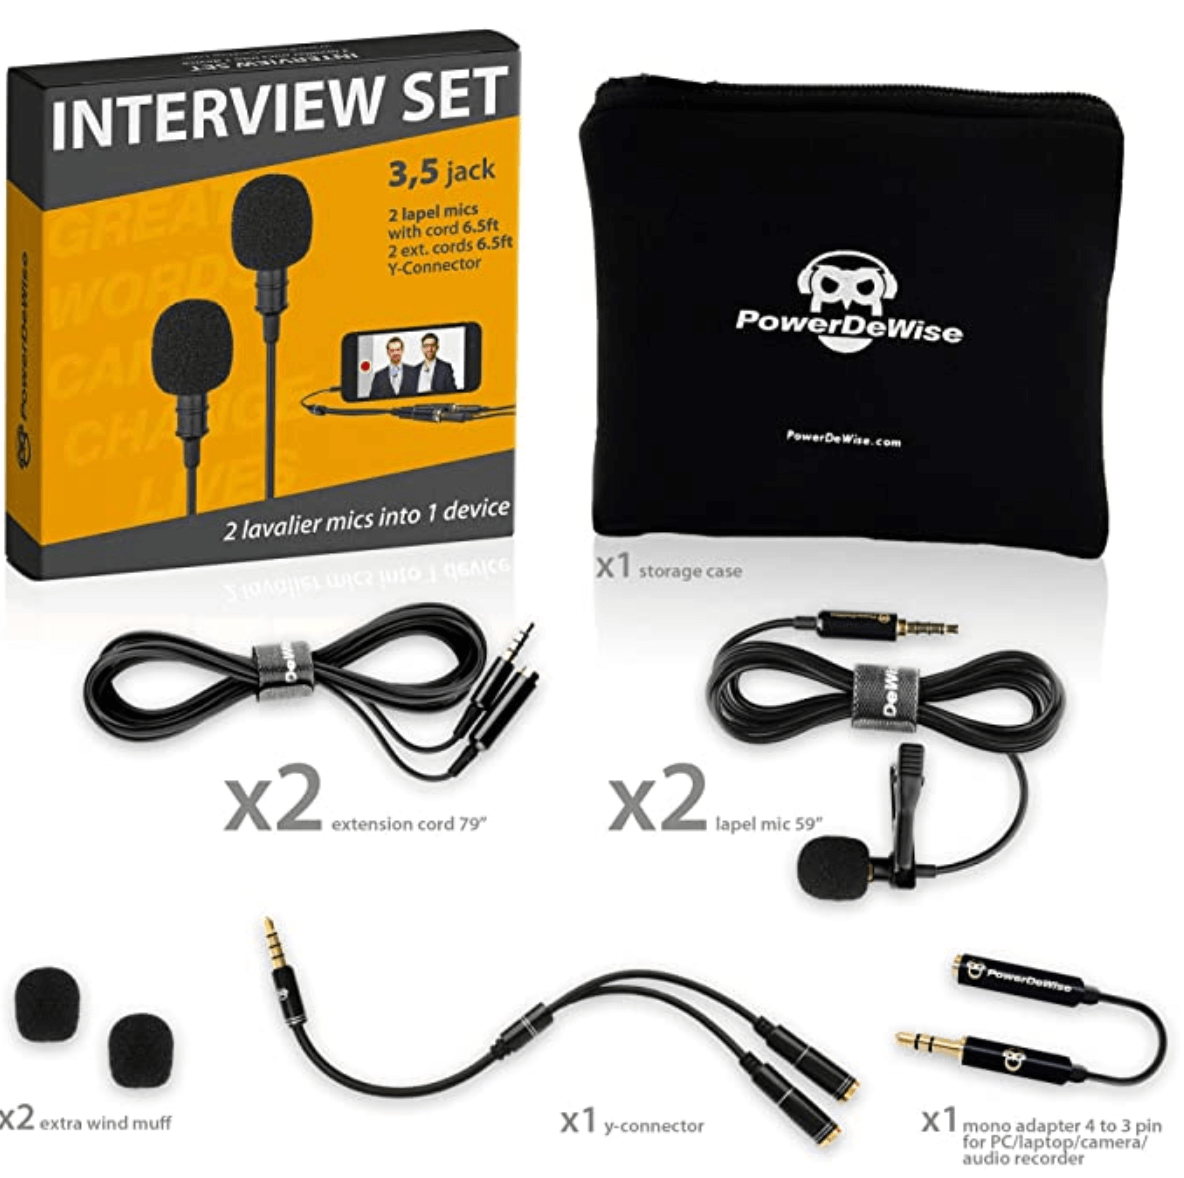 Powerdewise interview kit